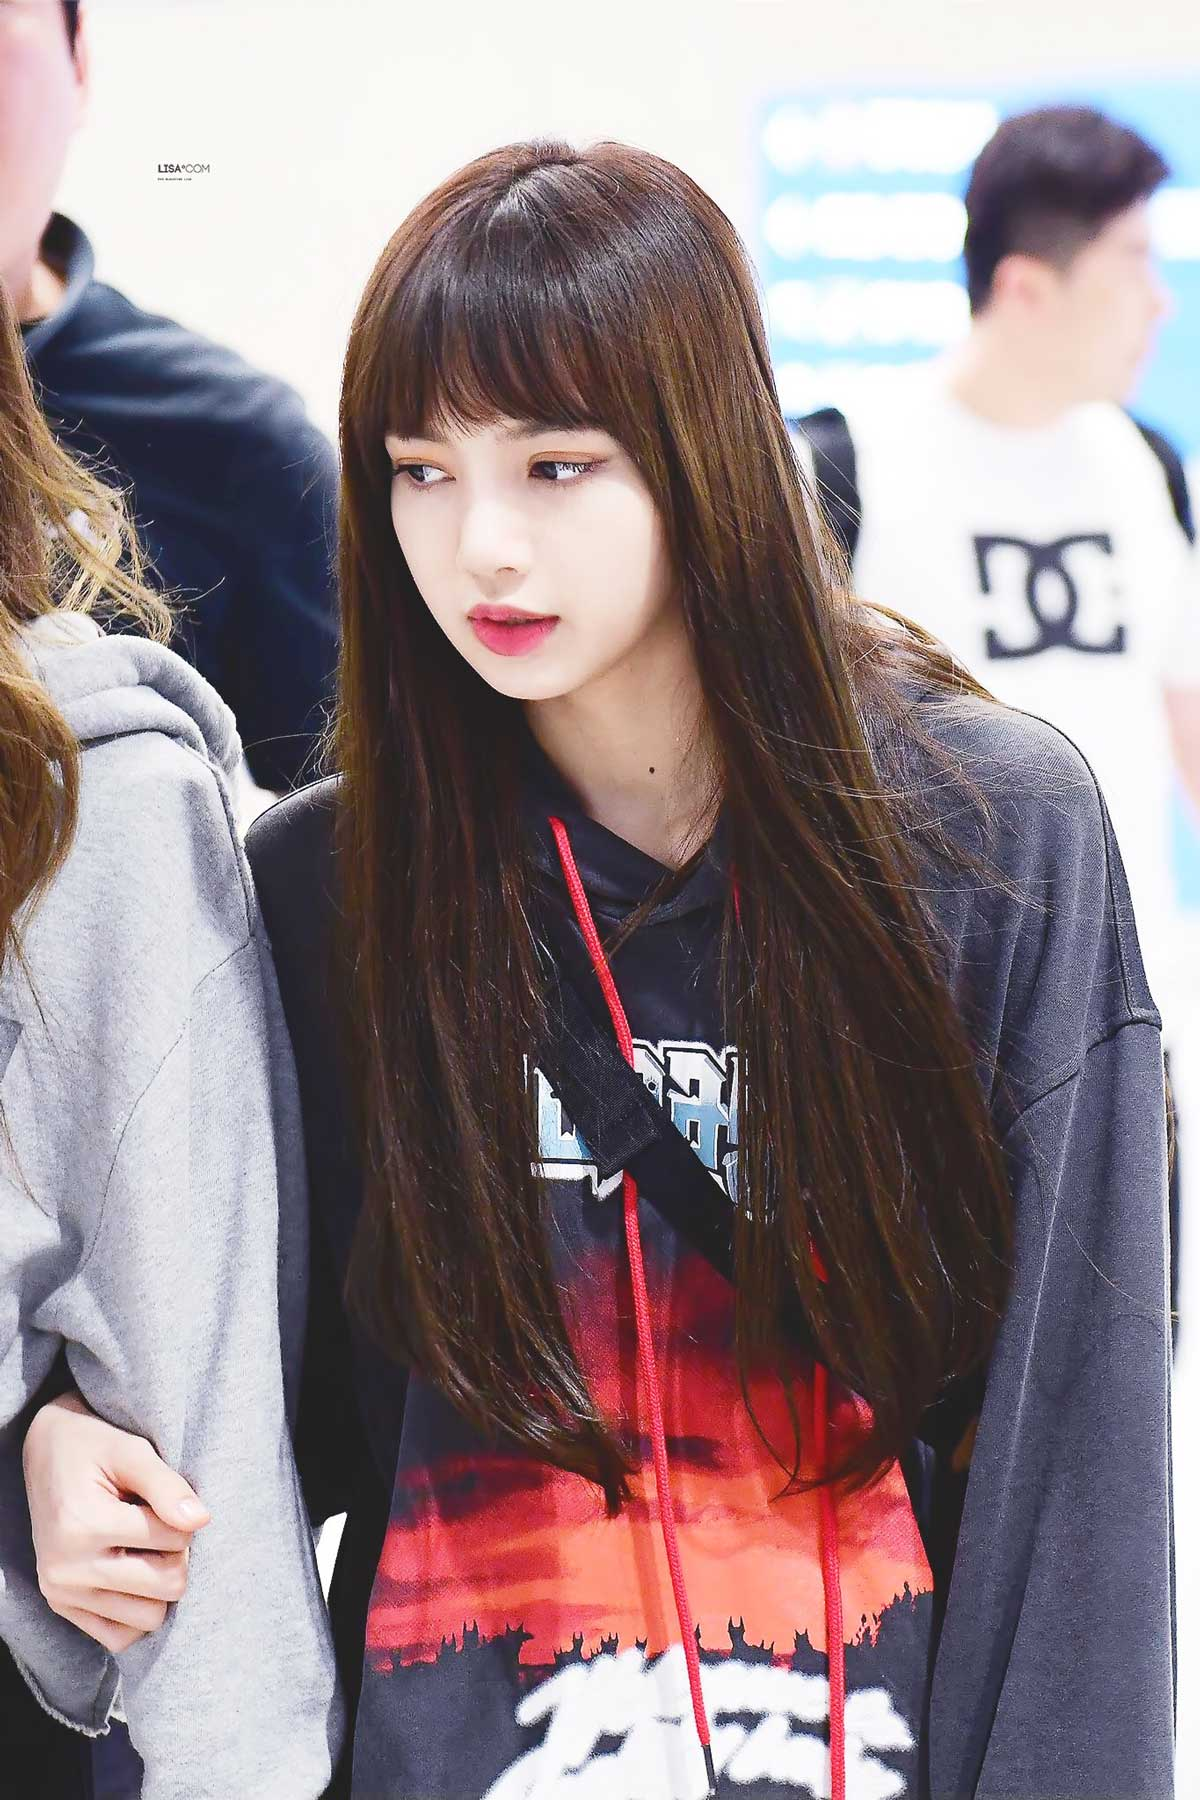 Blackpink Lisa Airport Fashion 5 April 2018 Incheon